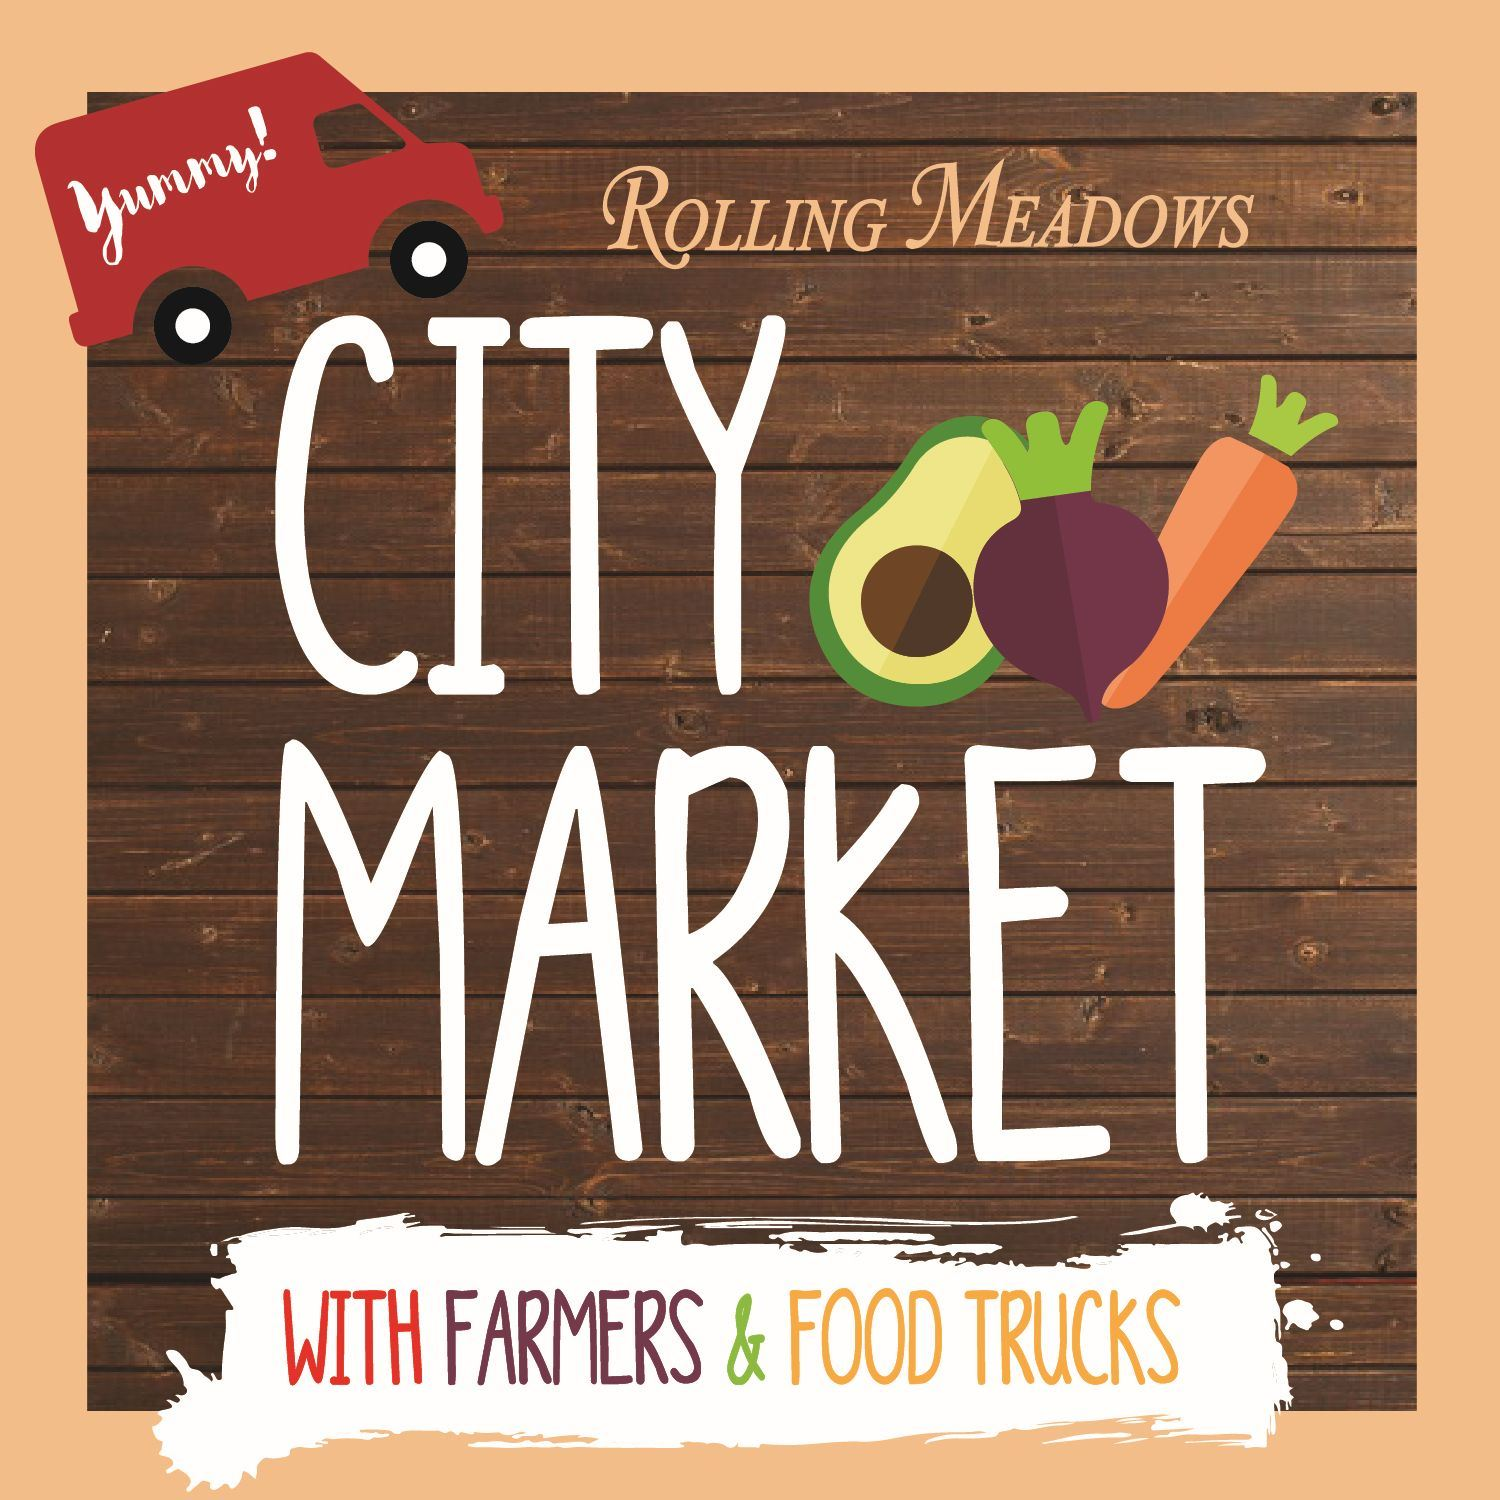 CITY MARKET LOGO 2018